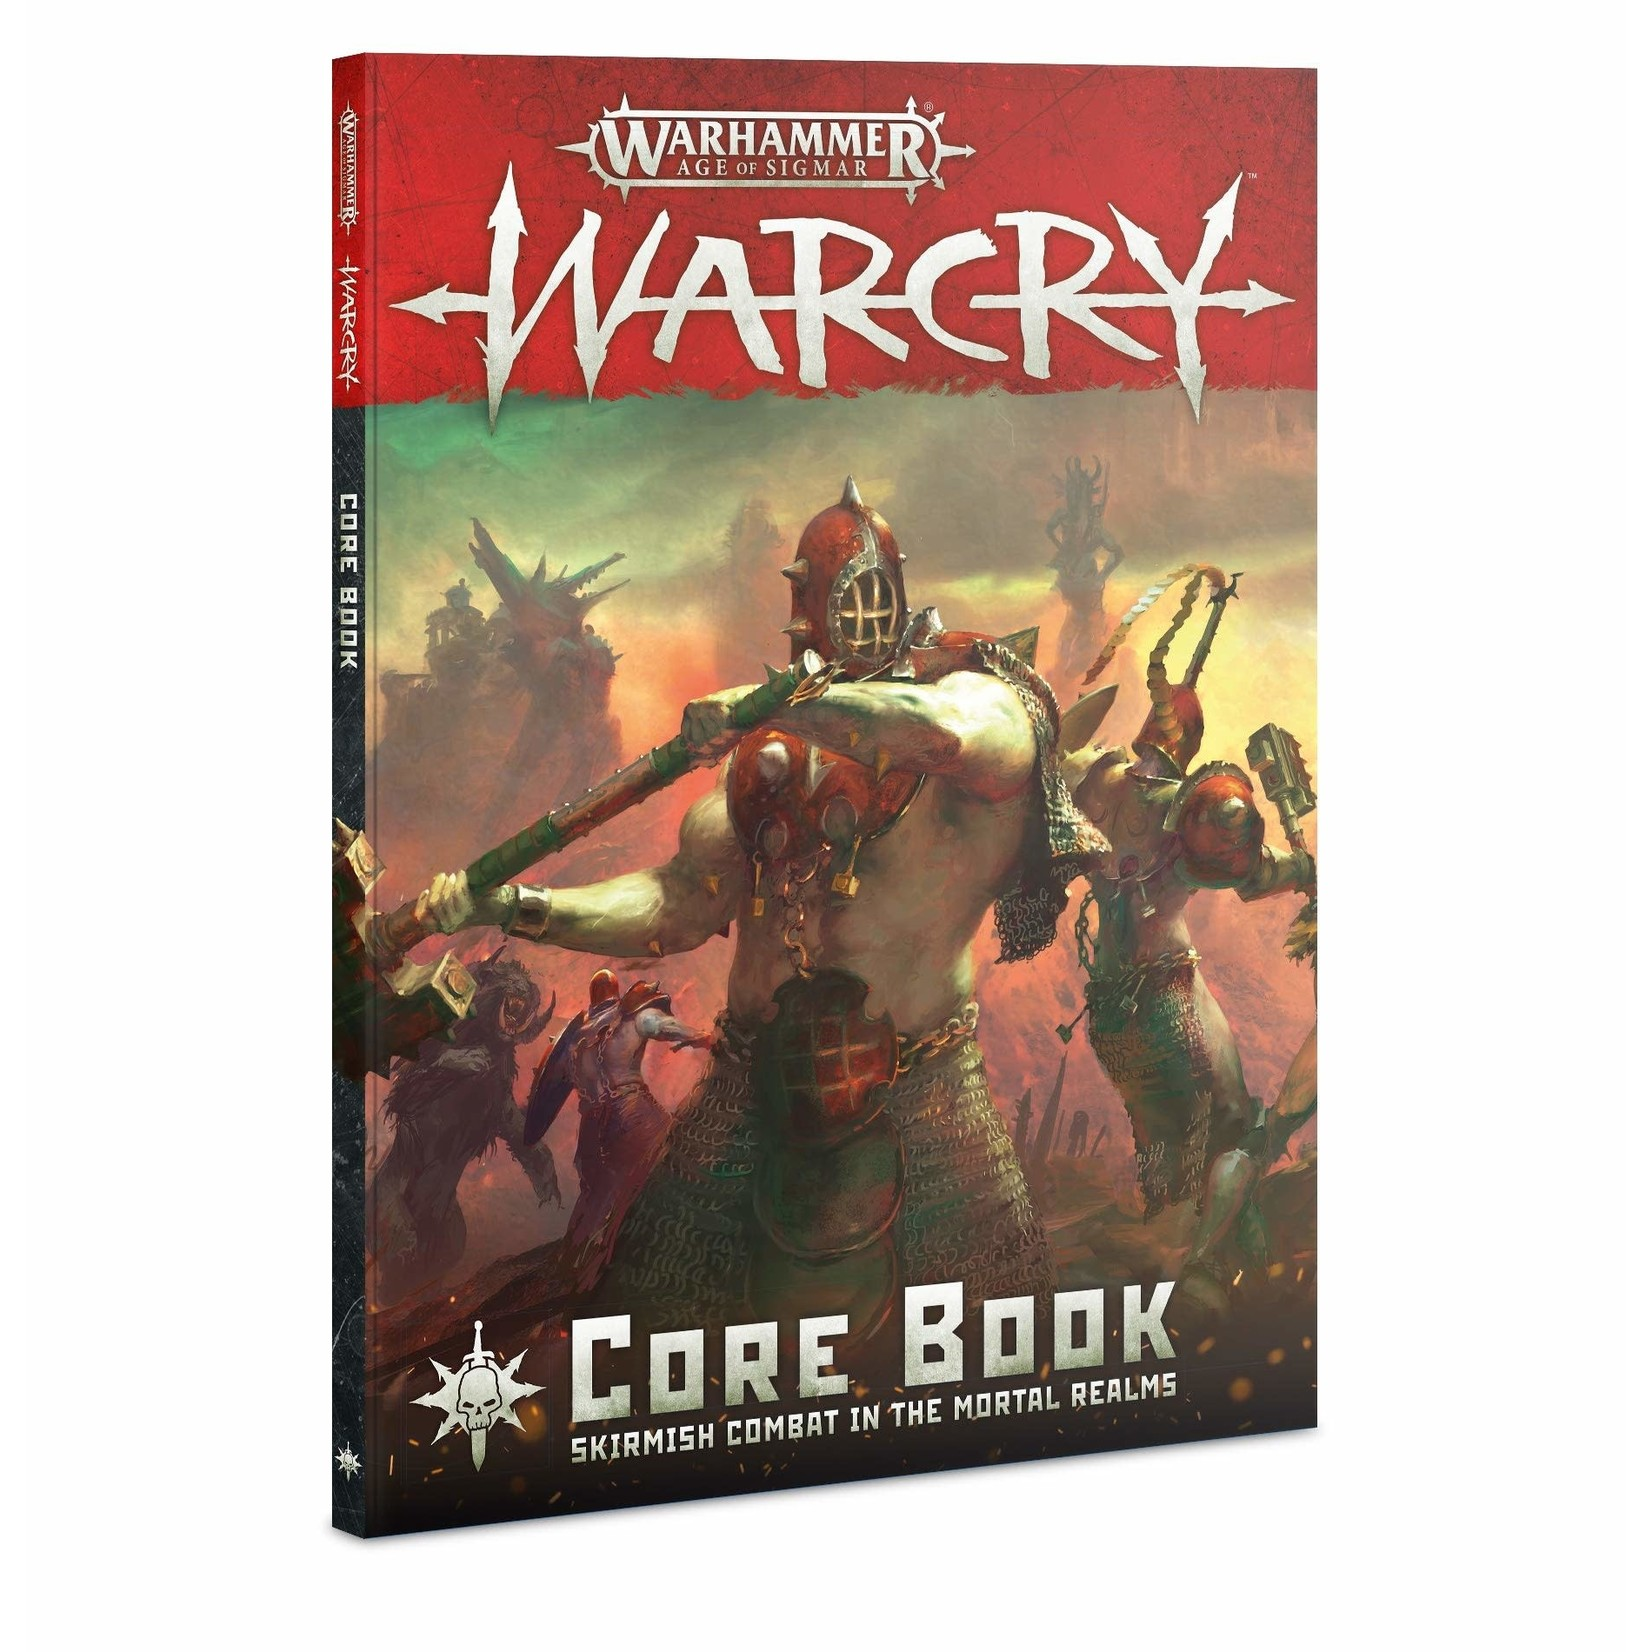 Games Workshop Warhammer Age of Sigmar: Warcry Core Book